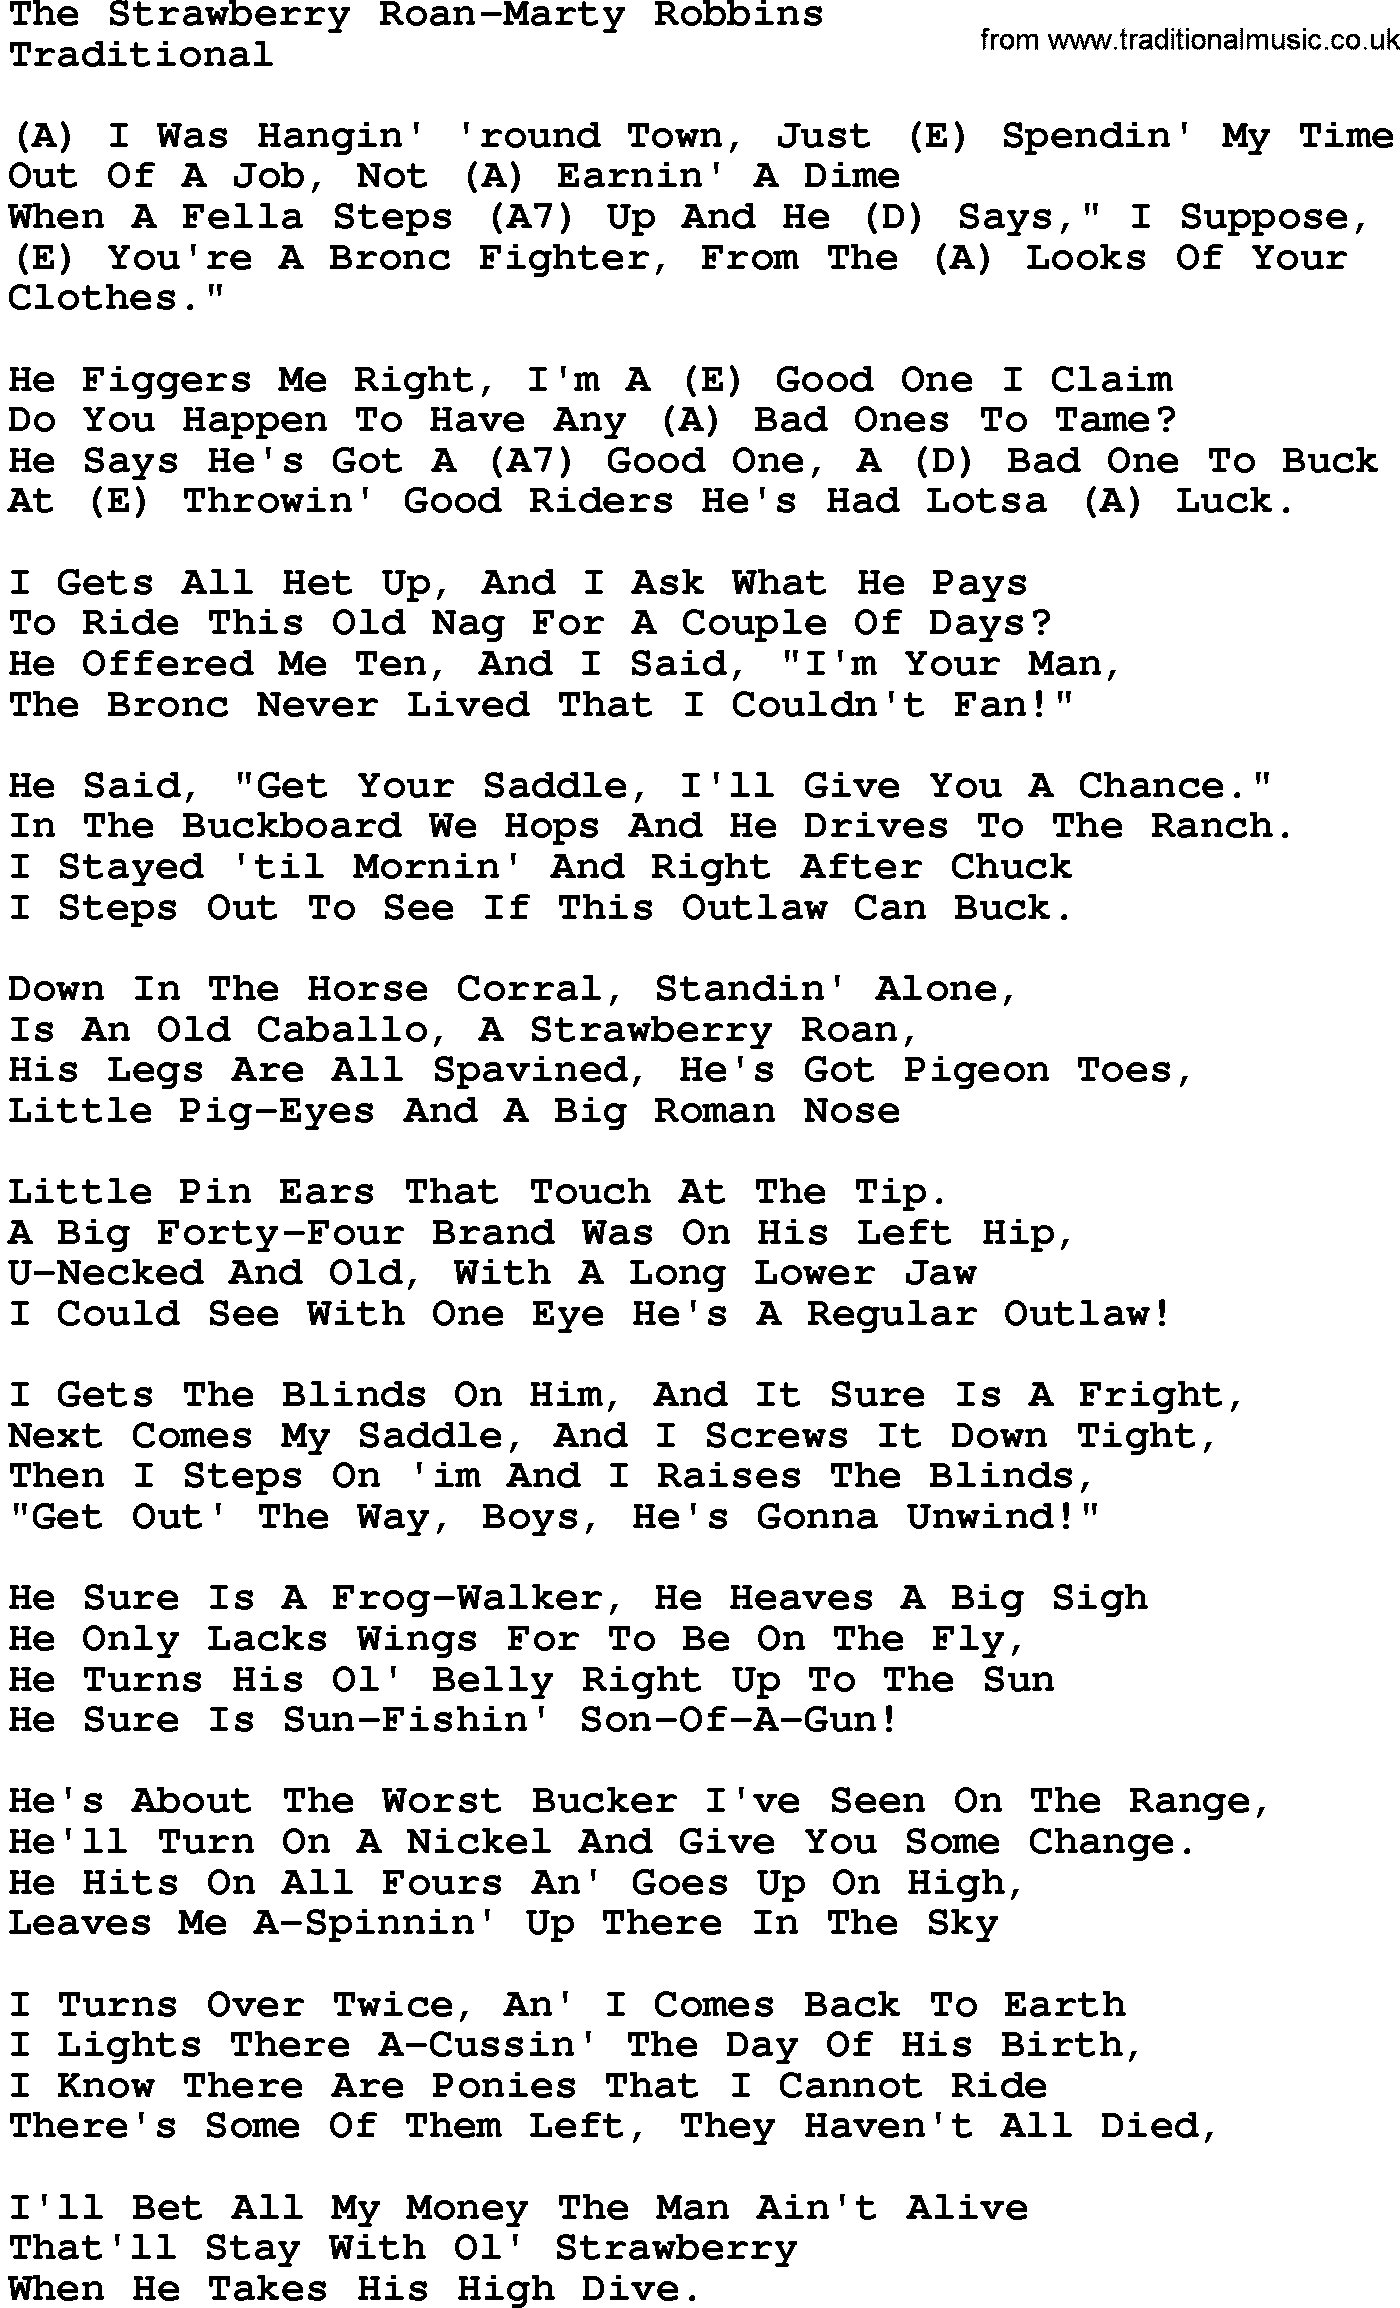 Country Music:The Strawberry Roan-Marty Robbins Lyrics and ... - photo#8